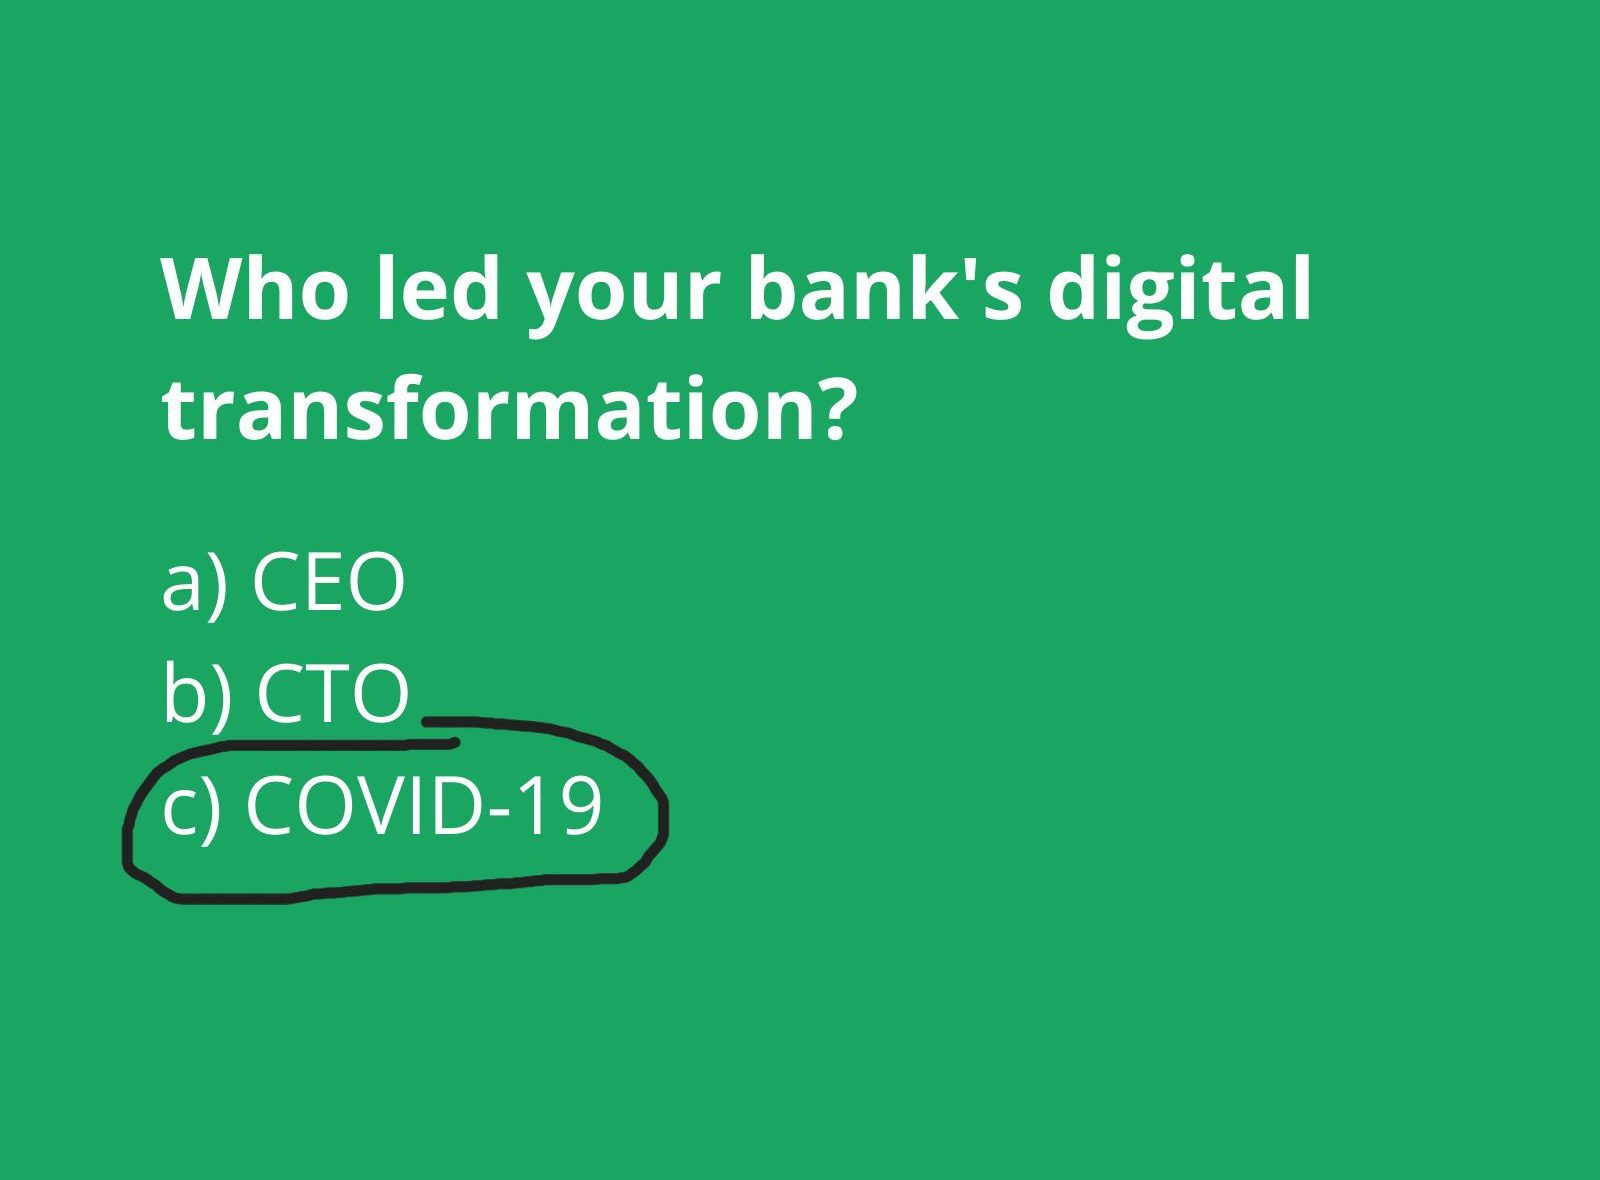 Who led your banks digital transformation? CEO, CTO, or COVID-19?